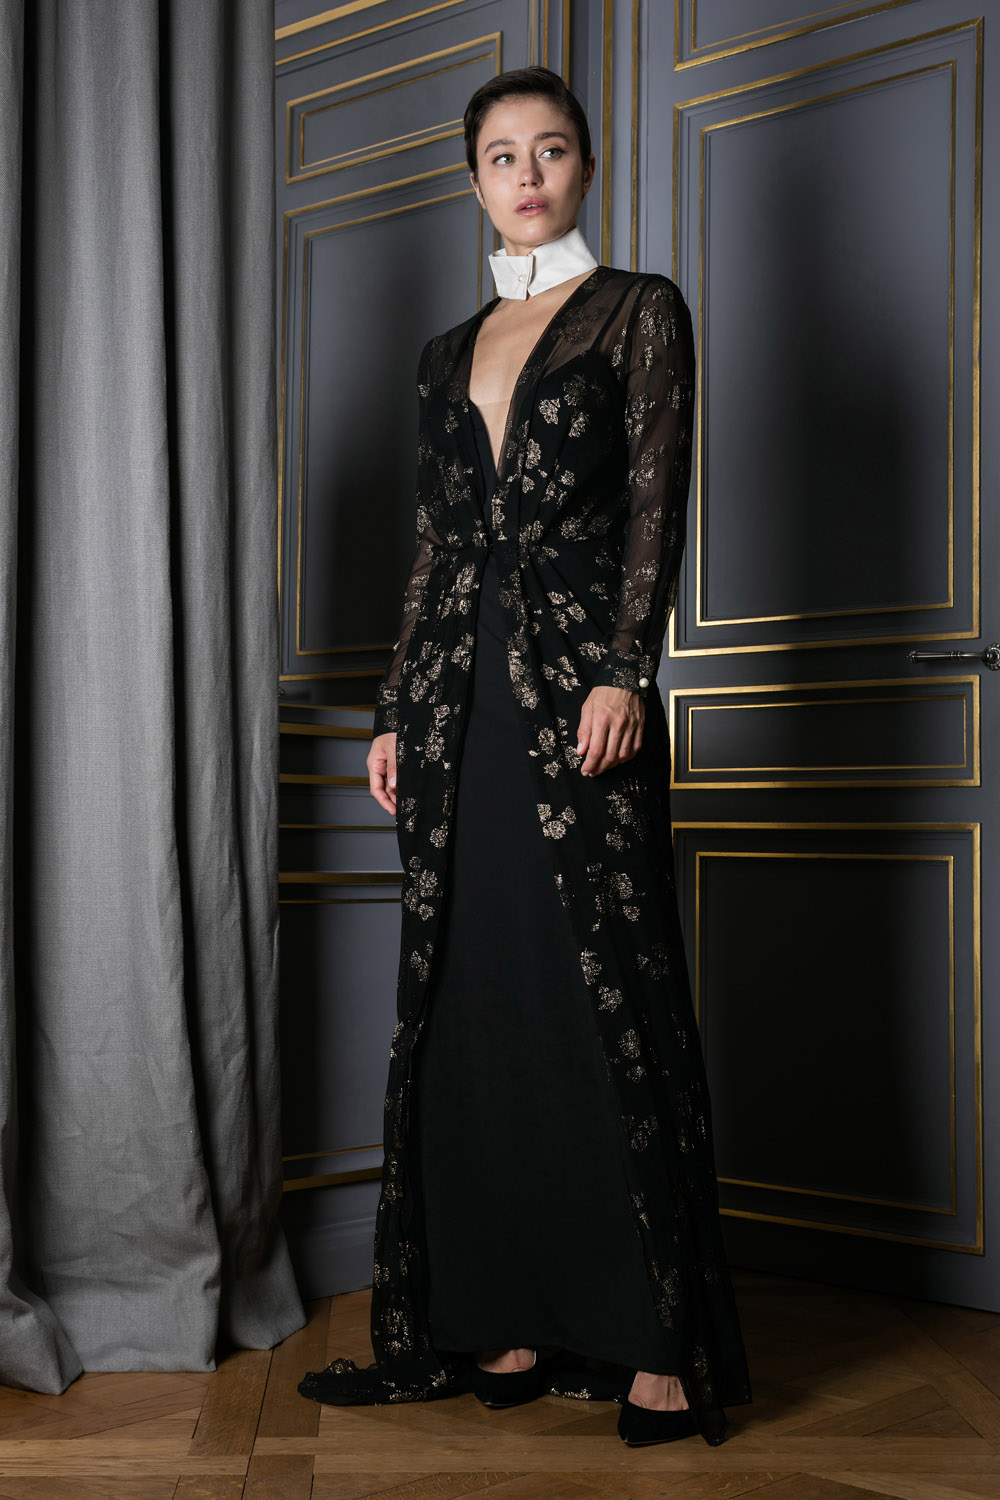 Black gown with a detachable white collar